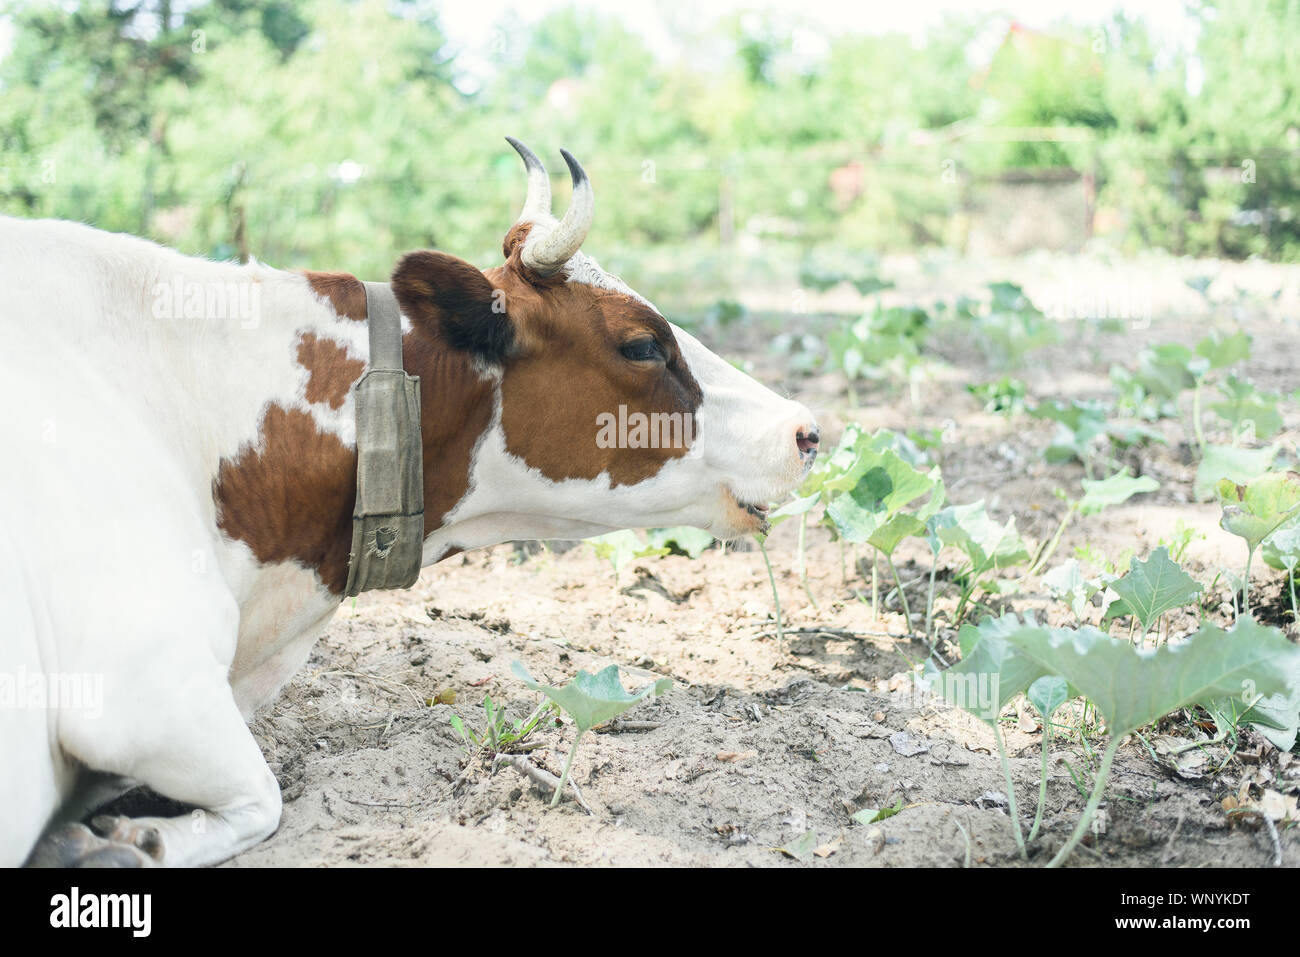 Cute Cow Lies On A Pasture Outdoors And Looks At The Camera Pasture Of Bulls Cows And Calves Stock Photo Alamy